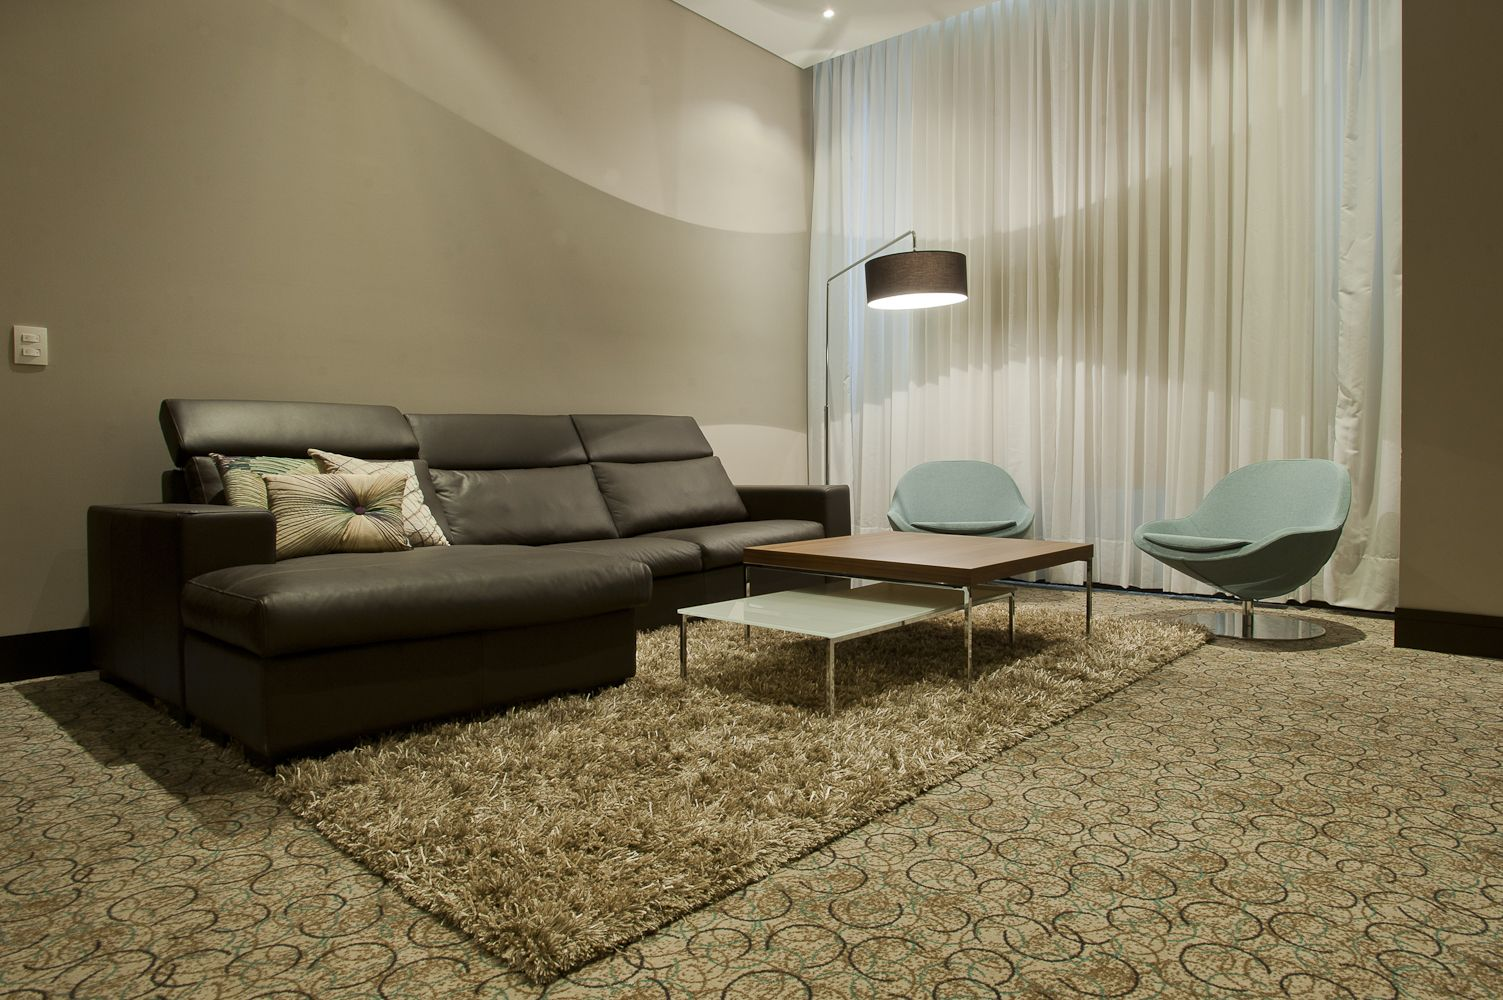 Boconcept nago sofa veneto chairs lugo coffee tables and shower mega lamp at hotel cosmos - Bo concept table basse ...